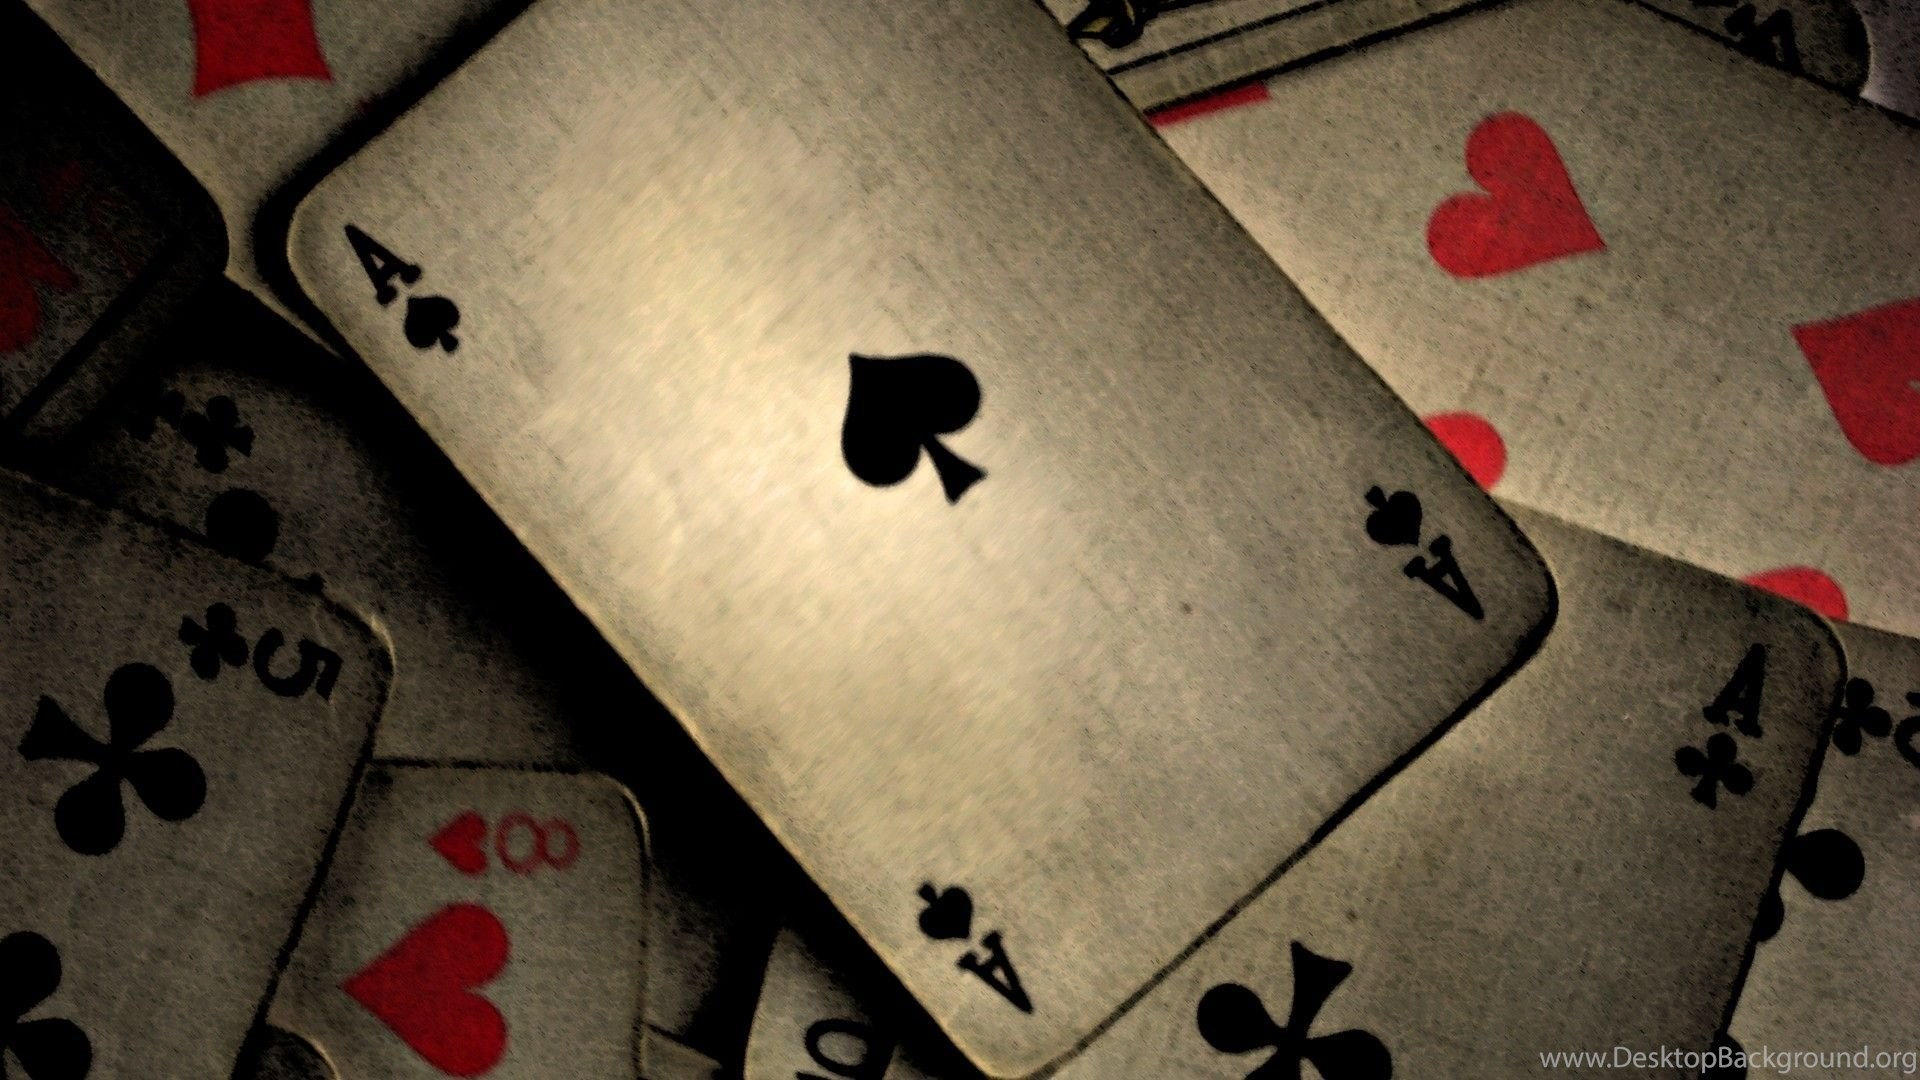 Online Casino Record: Stats And Information